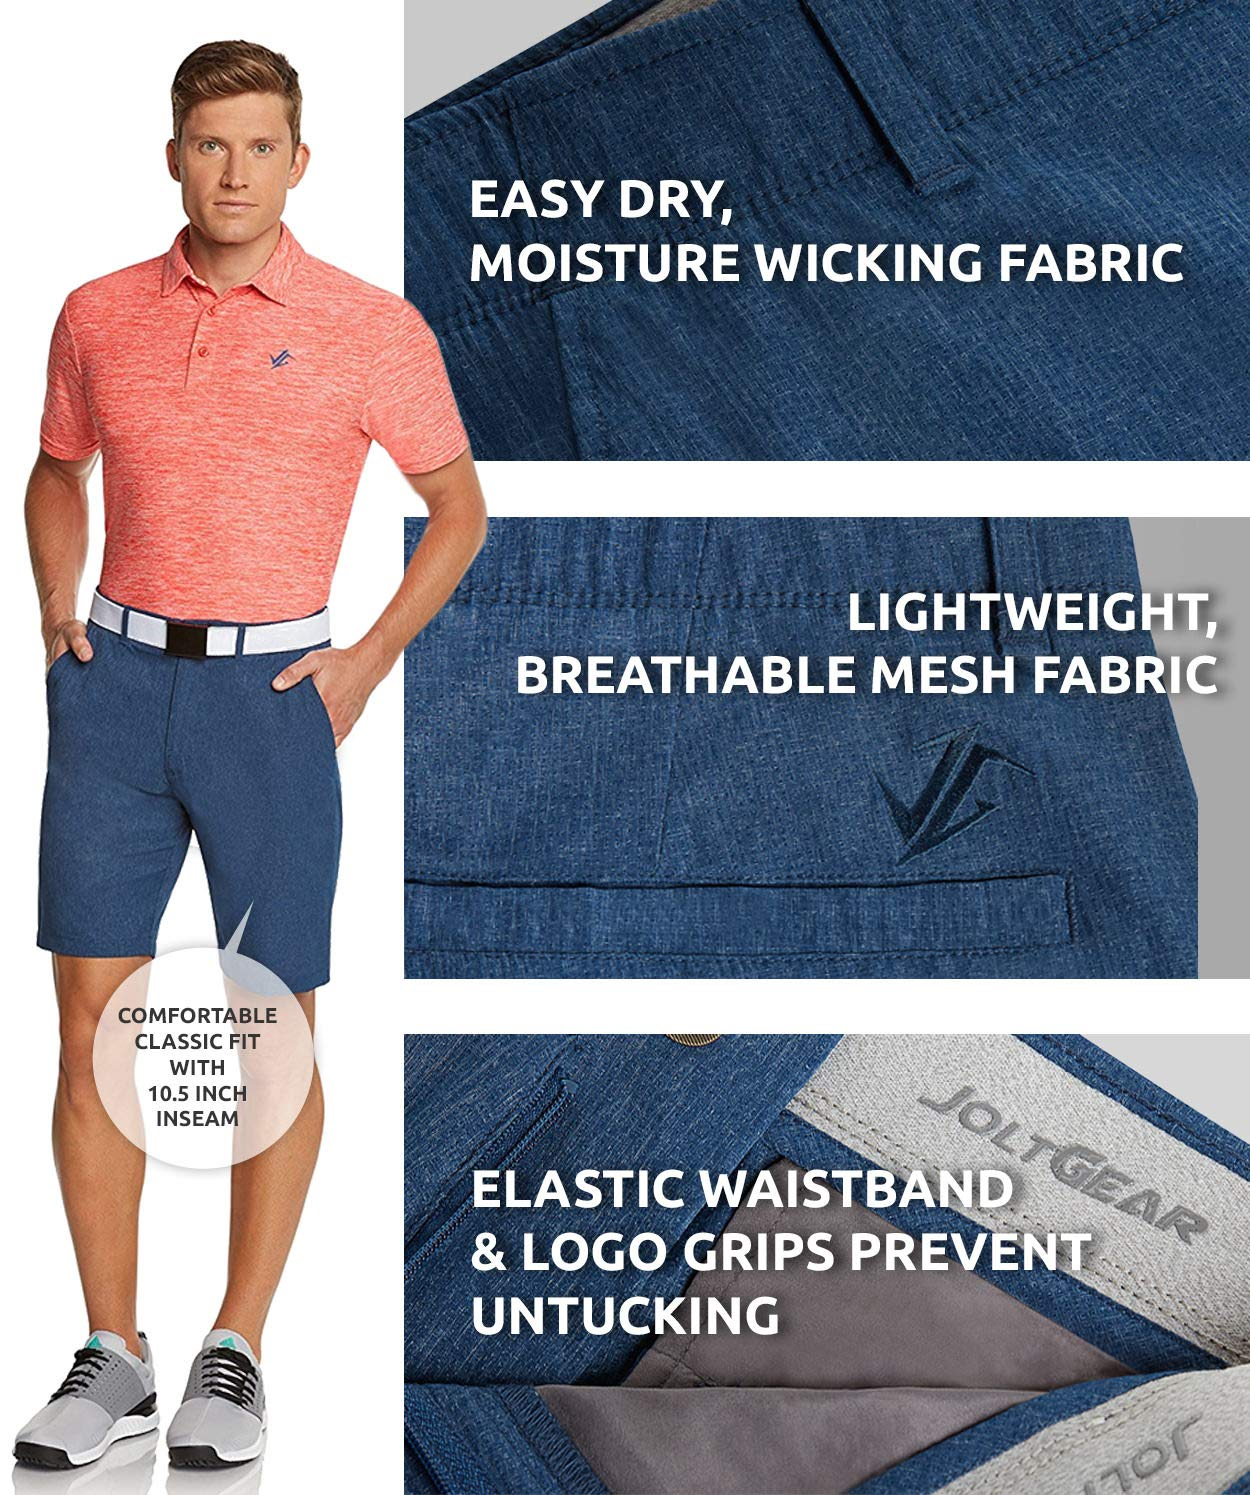 Jolt Gear Dry Fit Golf Shorts for Men – Casual Mens Shorts Moisture Wicking - Men's Chino Shorts with Elastic Waistband by Jolt Gear (Image #7)